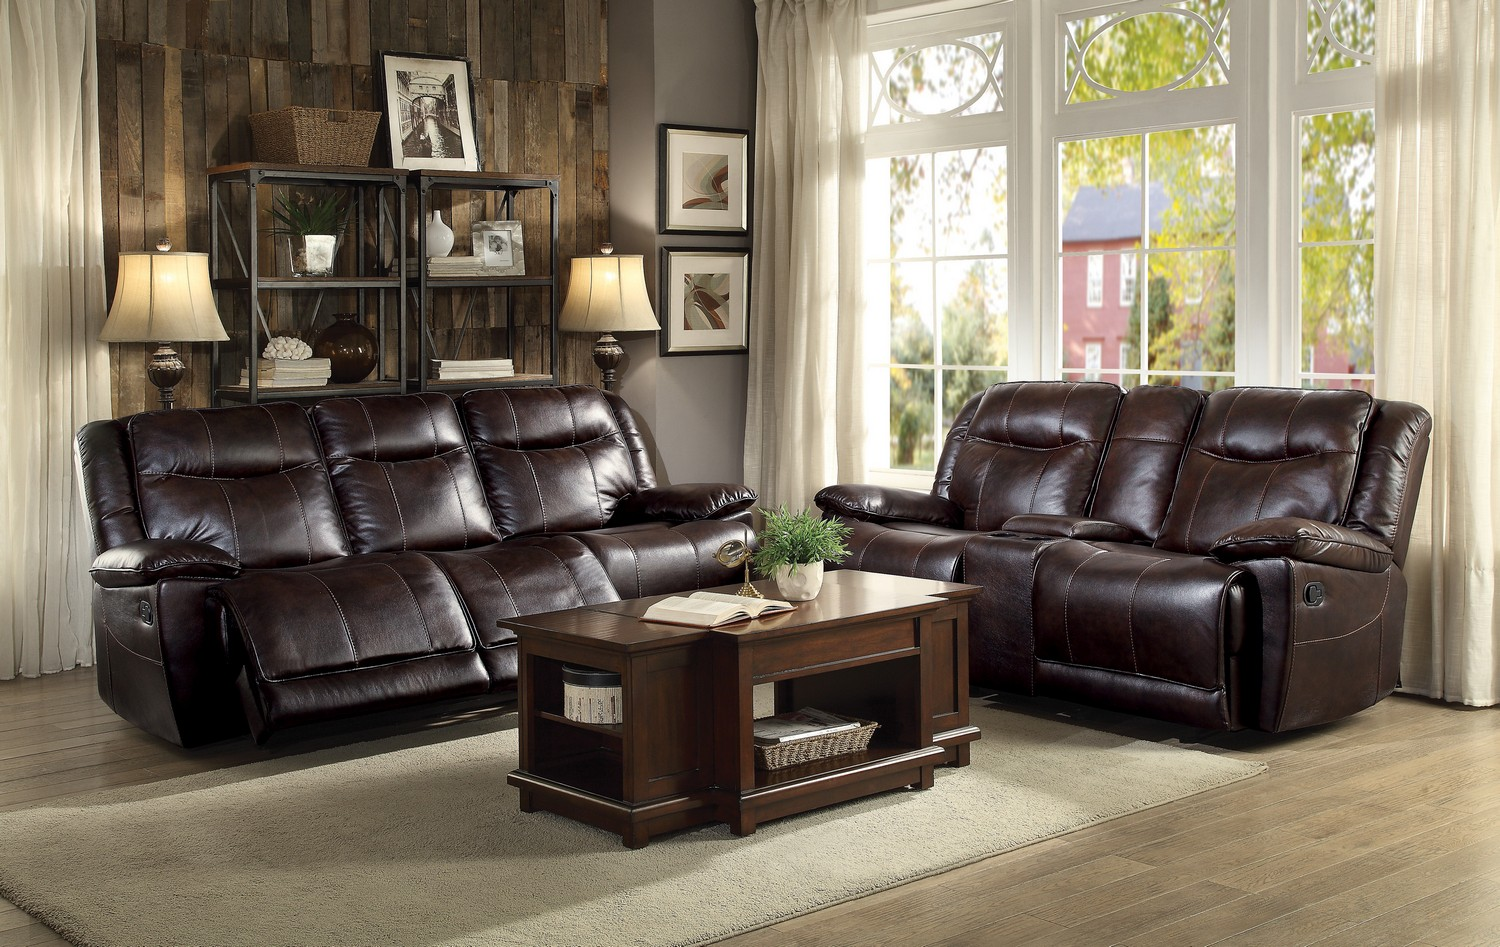 Homelegance Wasola Reclining Sofa Set   Leather Gel Match   Dark Brown